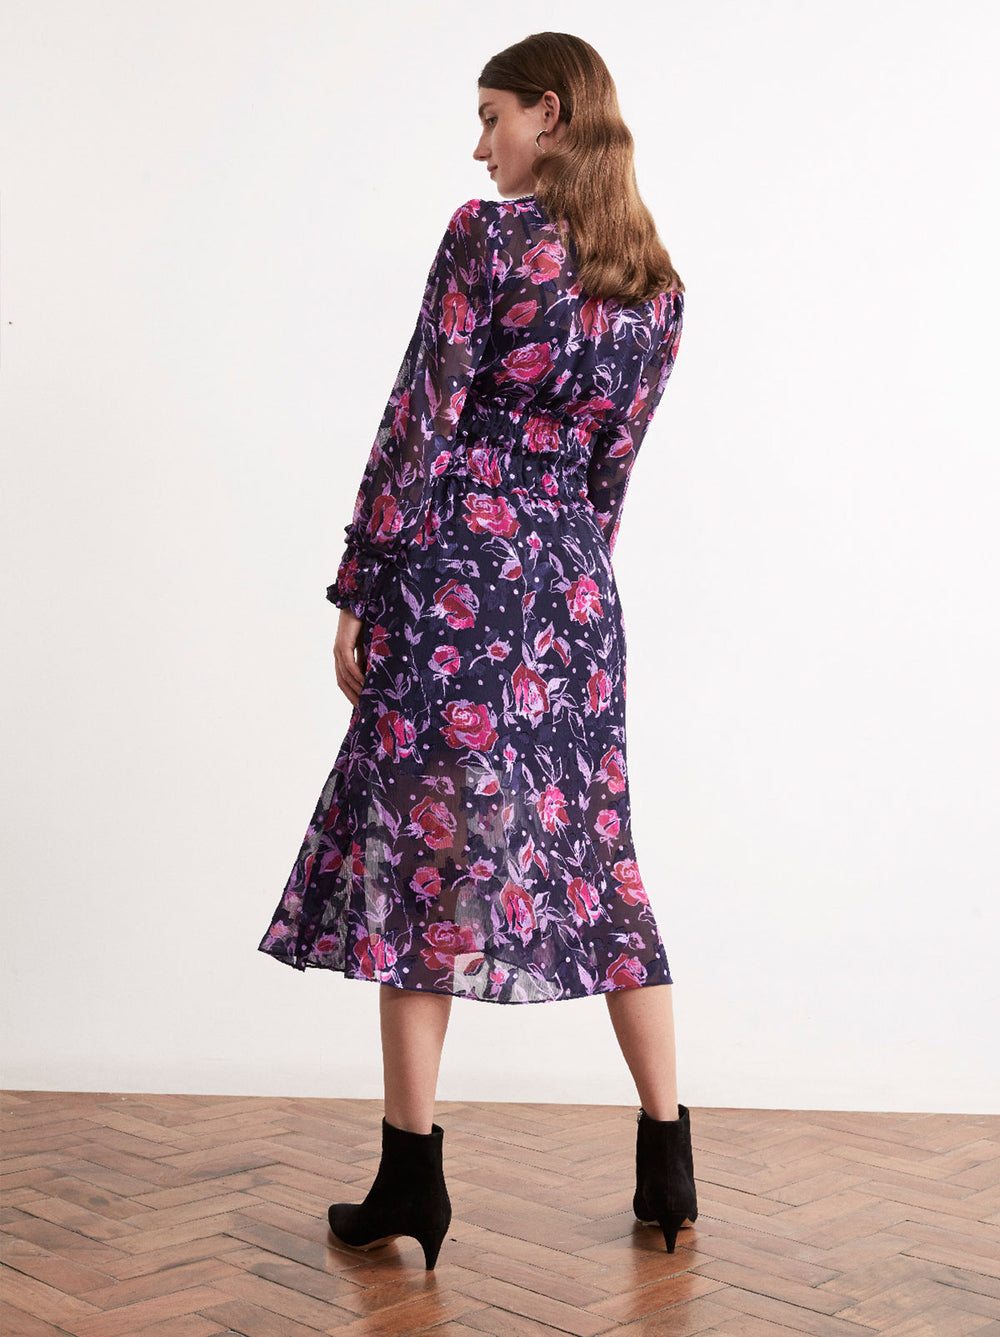 Nyla Purple Floral Print Smocked Midi Dress by KITRI Studio